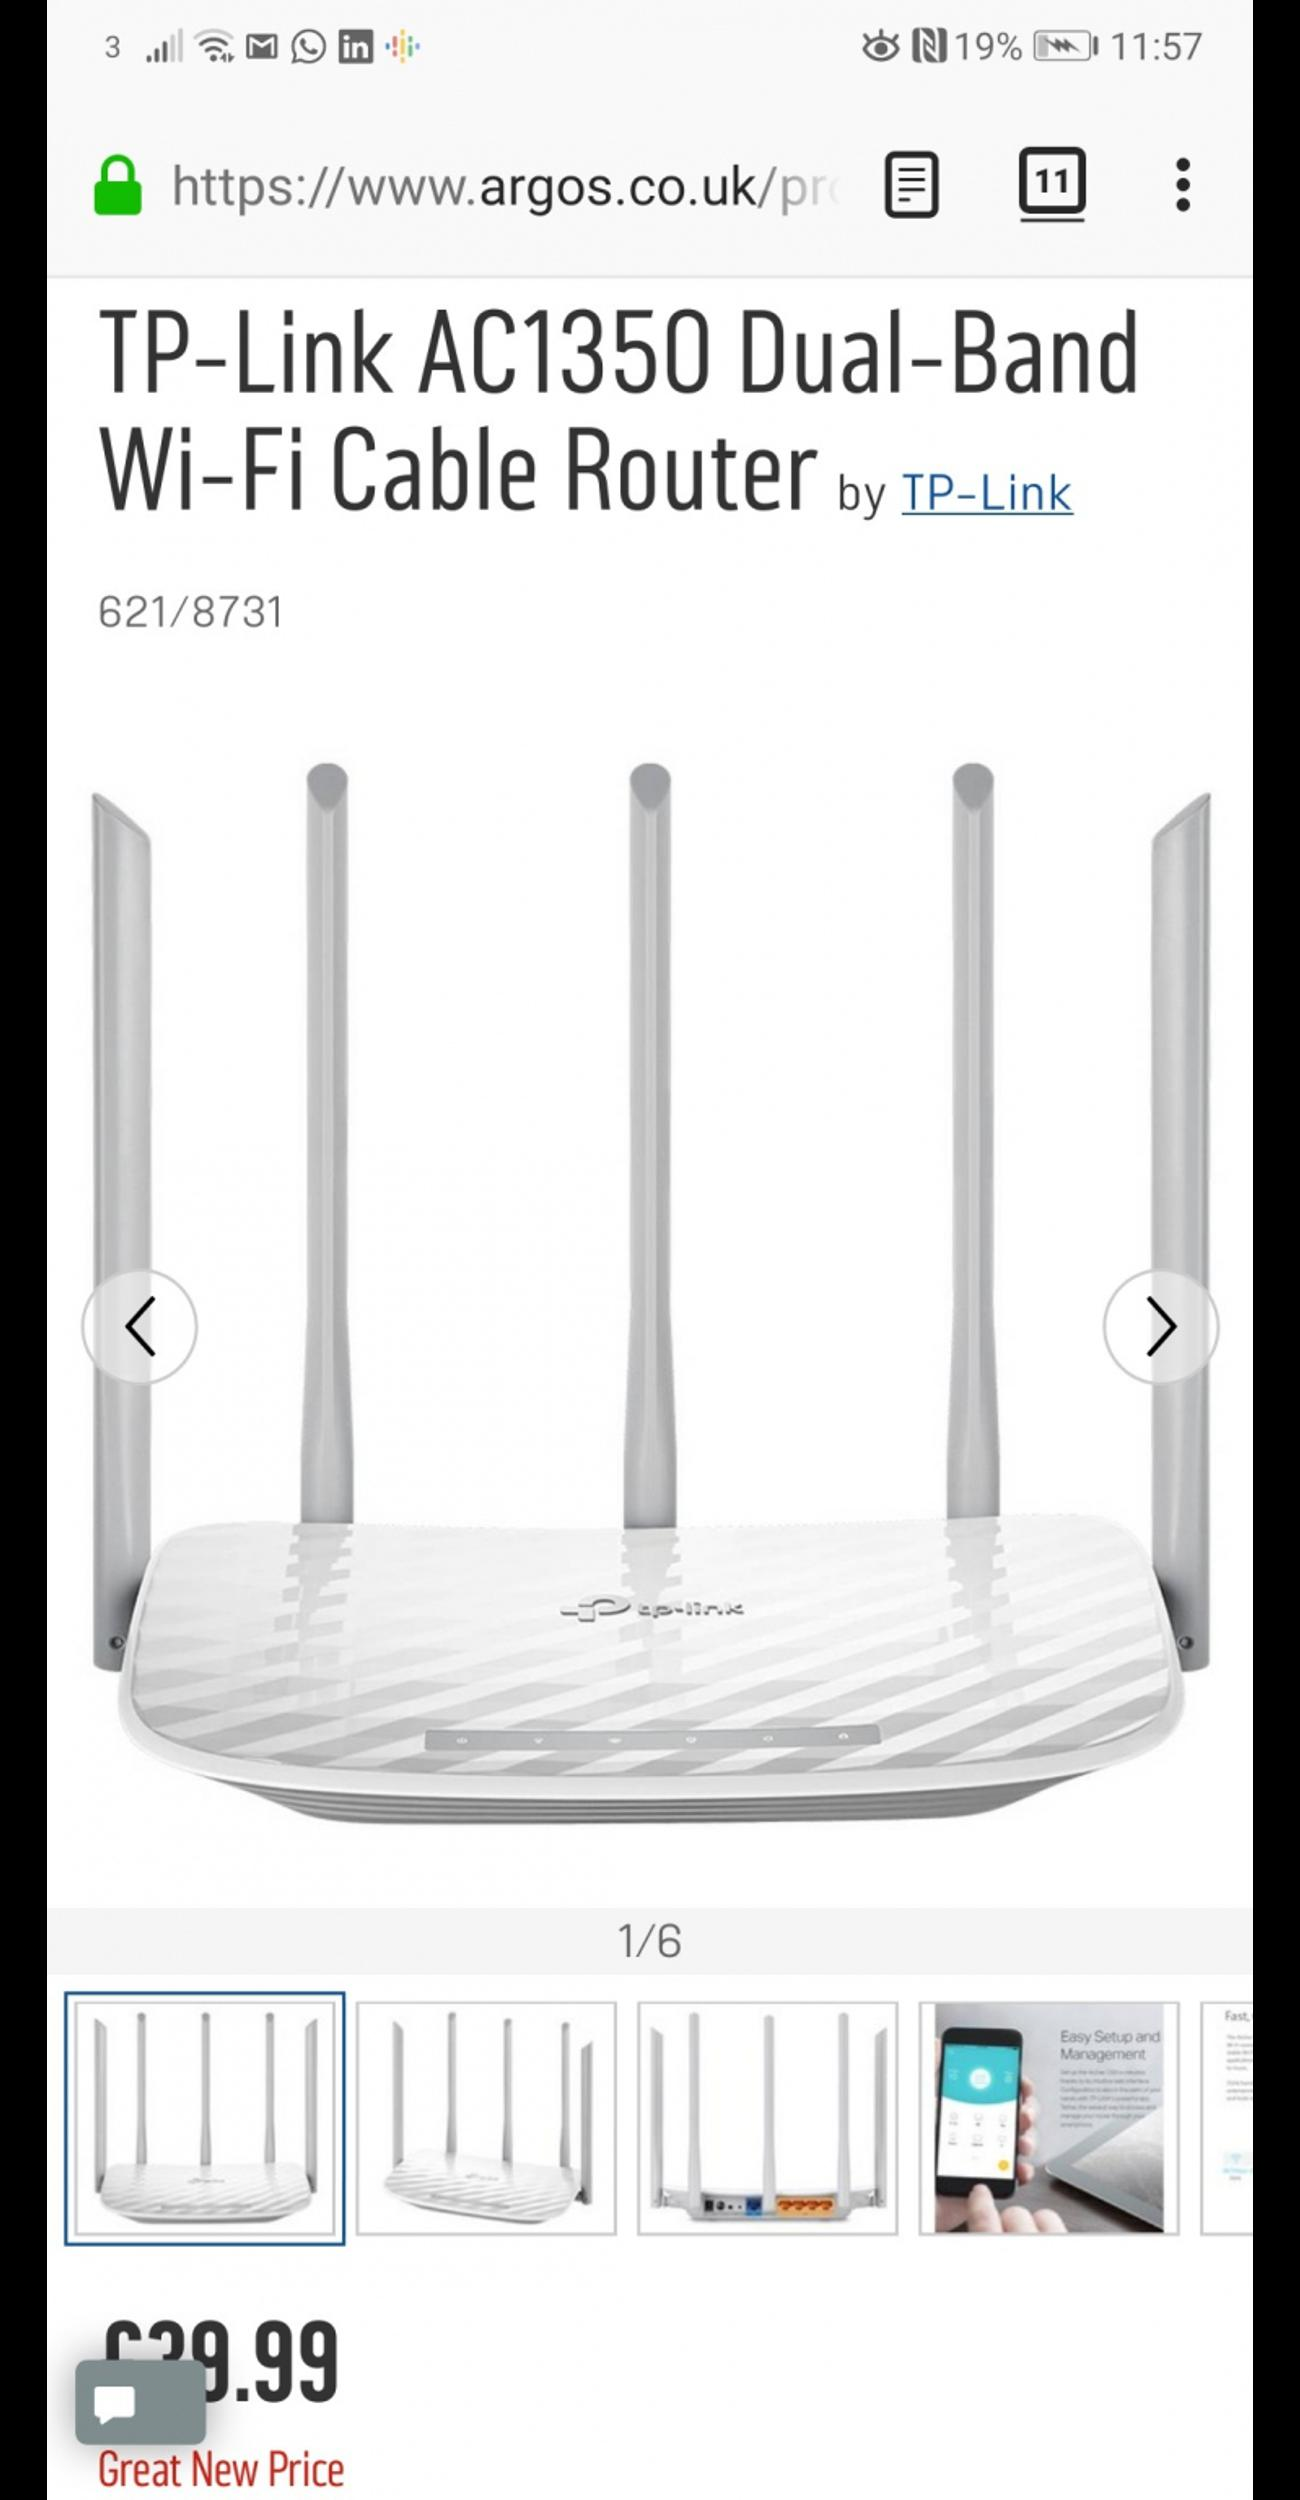 TP-Link AC1350 Dual-Band Wi-Fi Cable Router